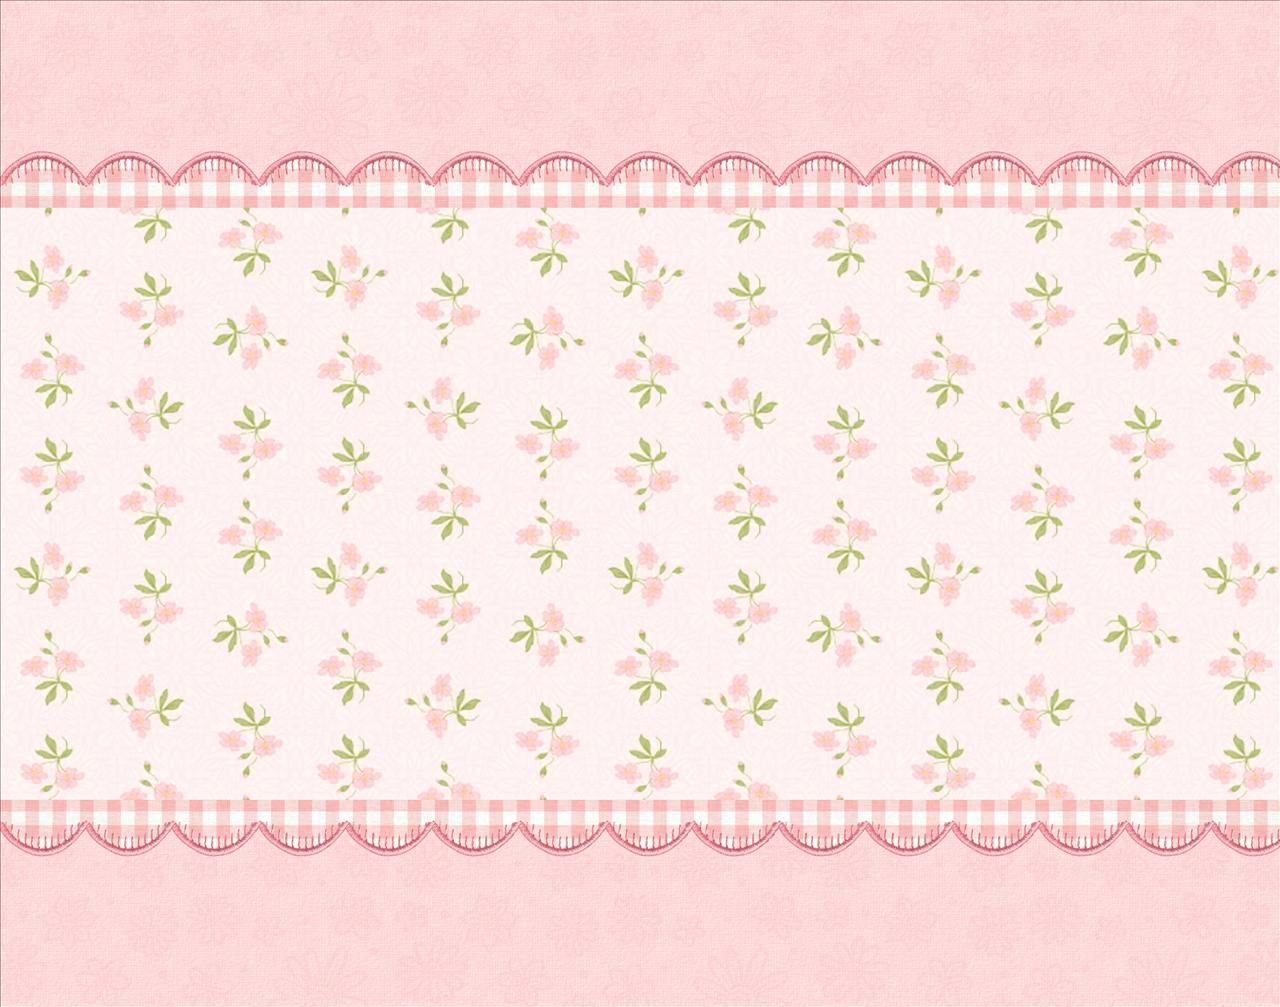 Picaboo Free Backgrounds View Entry papel digital